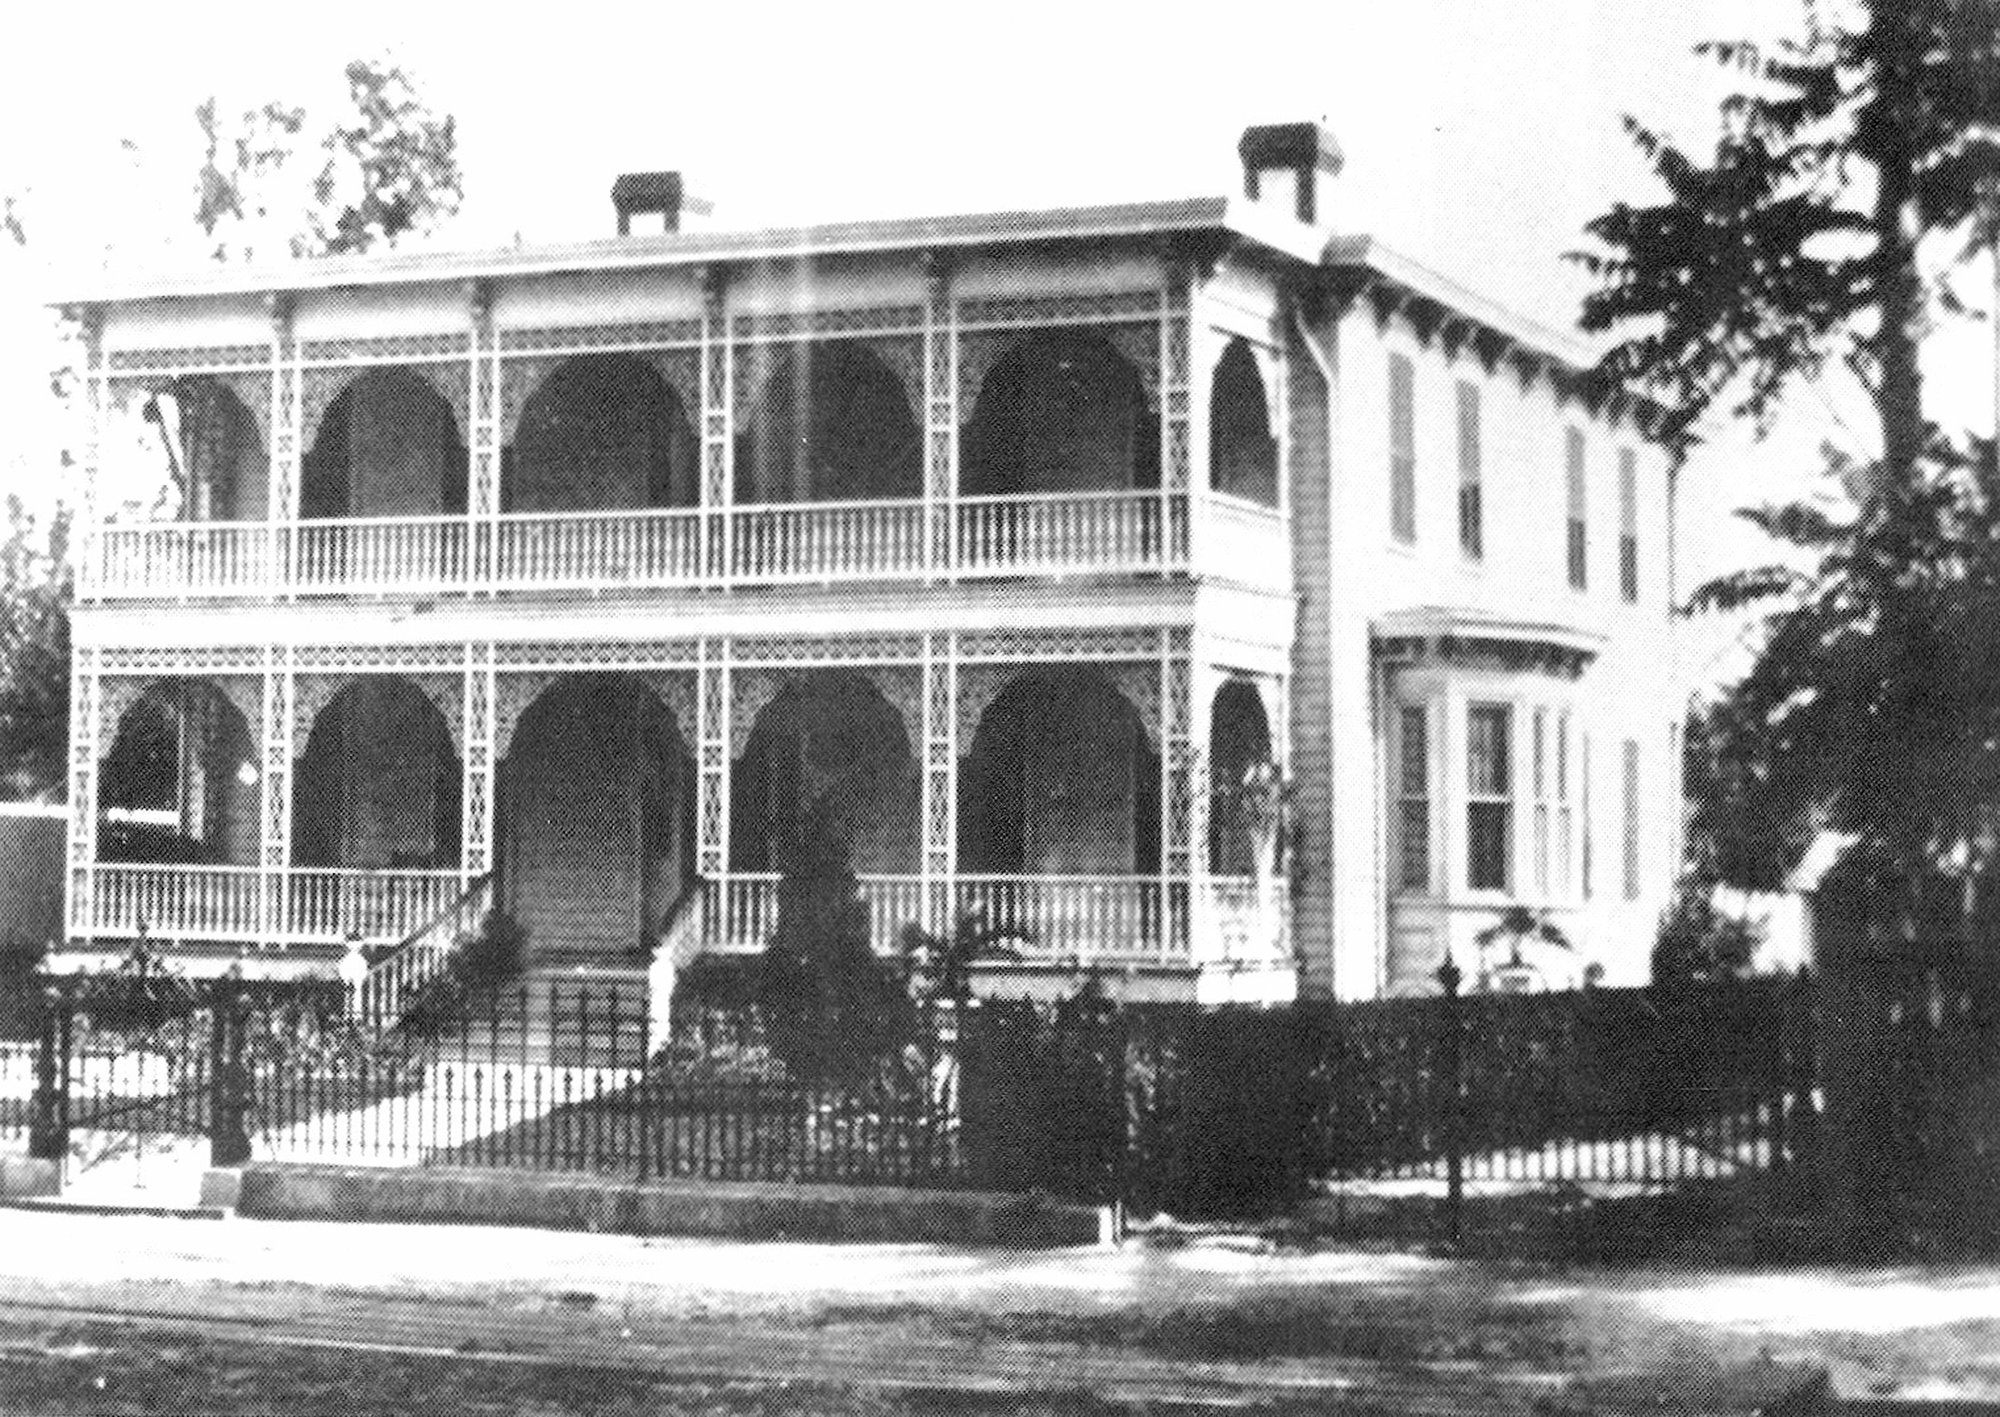 This is how the original O'Donnell House looked. It was moved from its original location near Cut Rate. Patrick O'Donnell was likely the father of Neill O'Donnell, who owned the building.